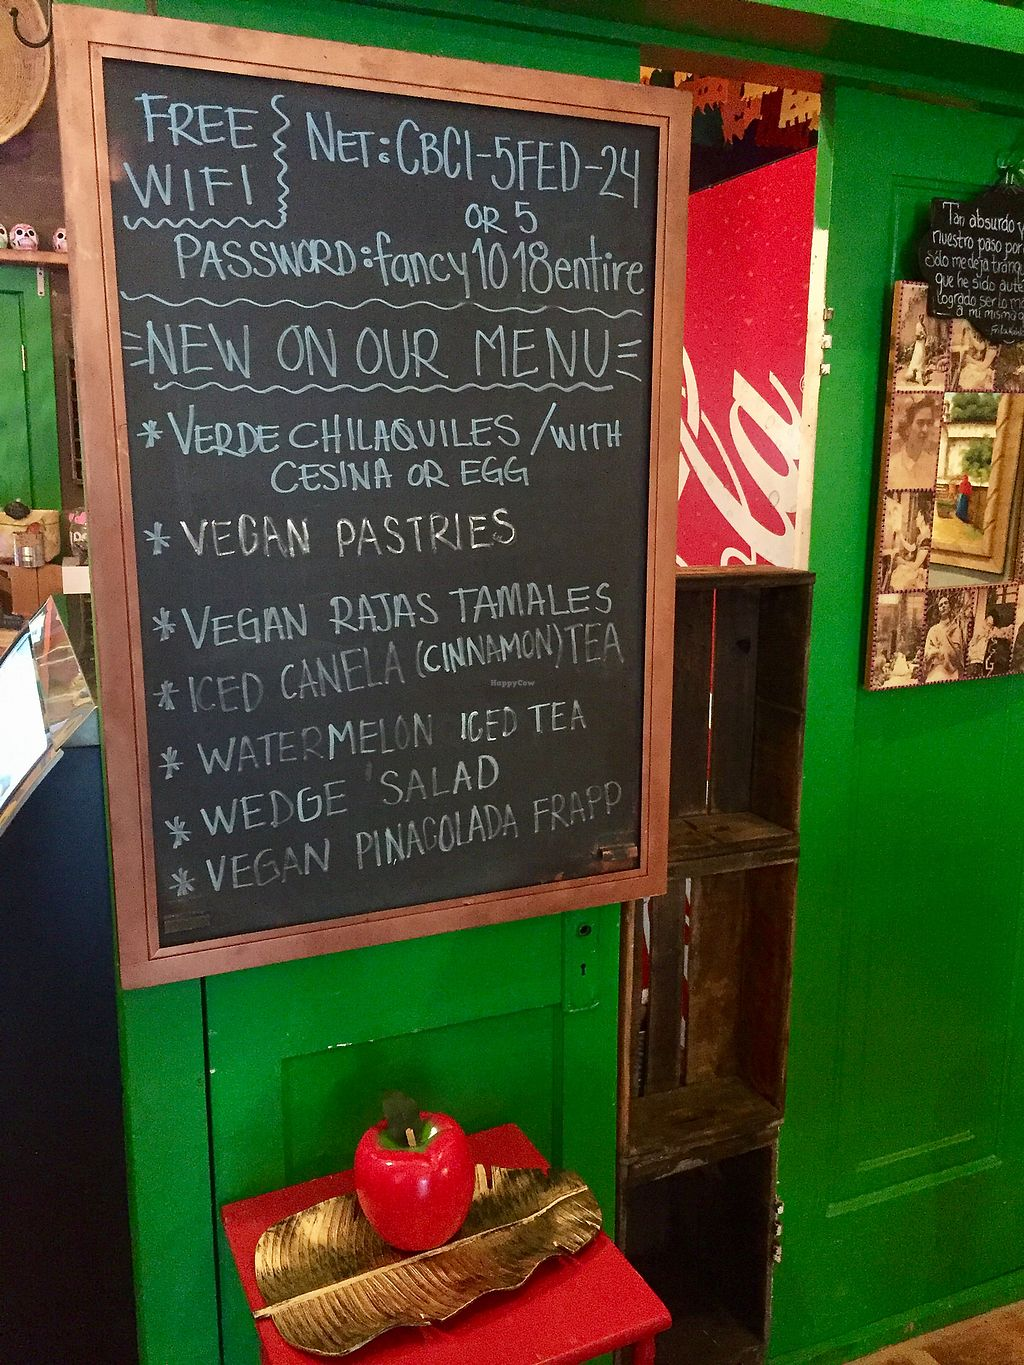 """Photo of Frida's Cafe  by <a href=""""/members/profile/happycowgirl"""">happycowgirl</a> <br/>Lots of new vegan options <br/> October 7, 2017  - <a href='/contact/abuse/image/88806/312545'>Report</a>"""